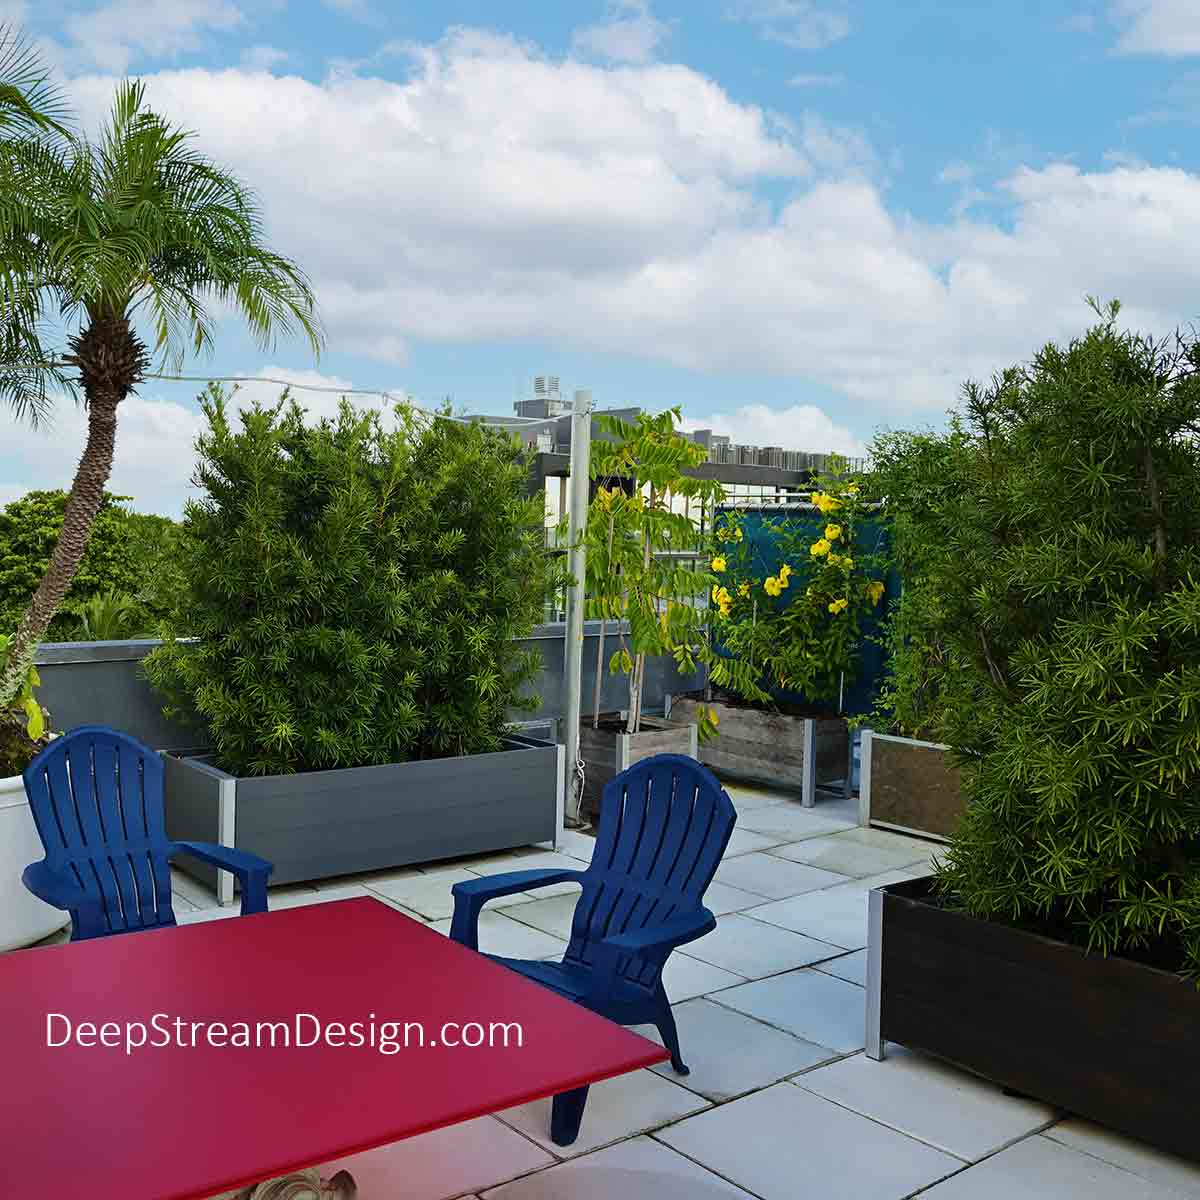 Newly constructed buildings are blocked from view using privacy screen hedges and trees grown in a variety of modern DeepStream Mariner and Audubon commercial planters, and planters with trellises and vines with large yellow flowers, on this tropical penthouse rooftop deck dining area with a colorful red table and contrasting blue chairs.